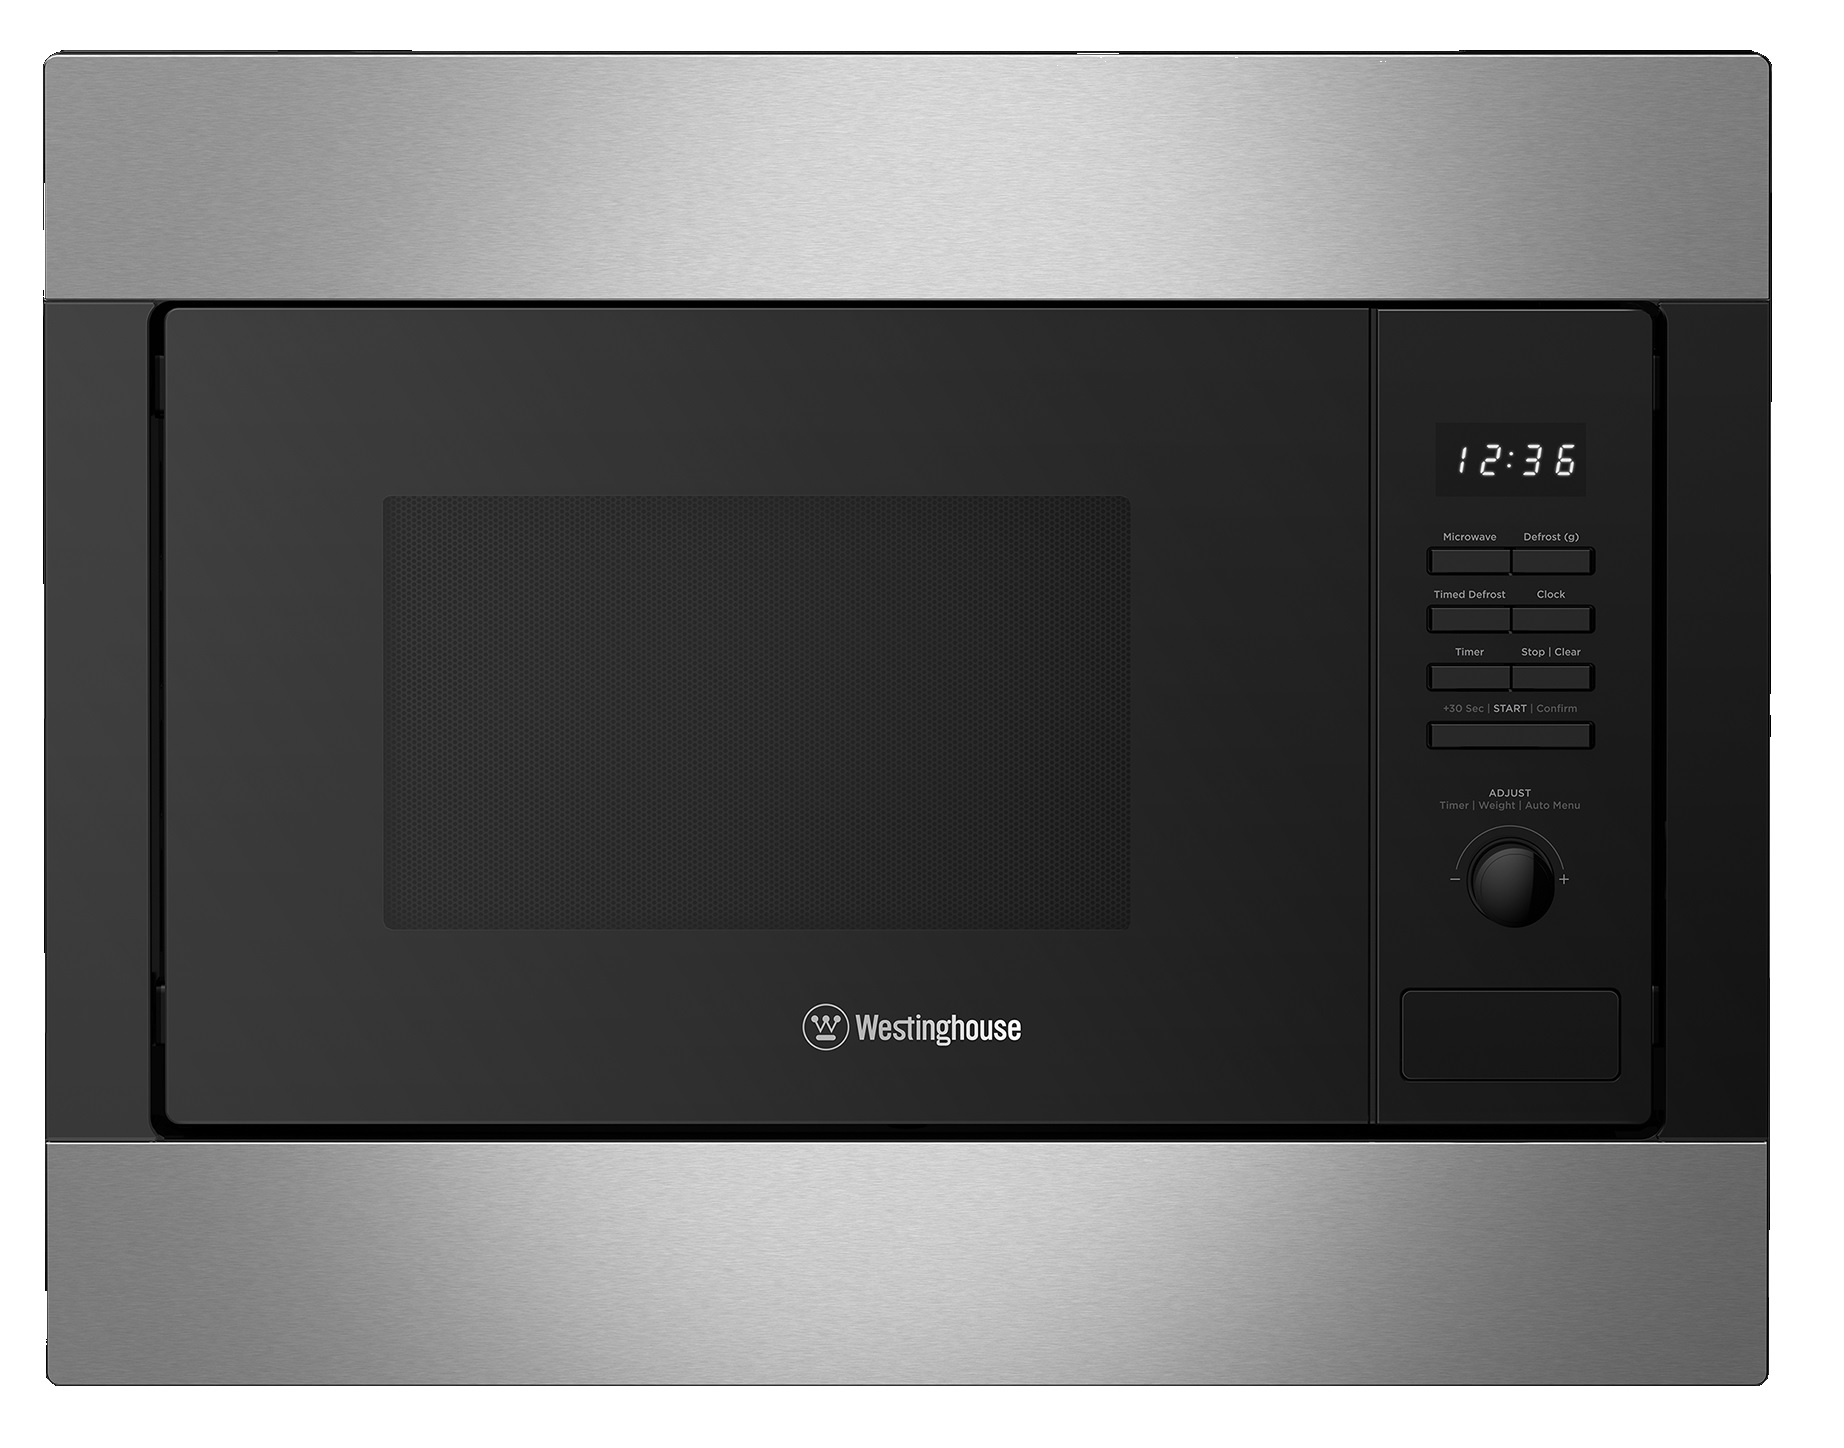 Westinghouse WMB2522SC Built-in Microwave